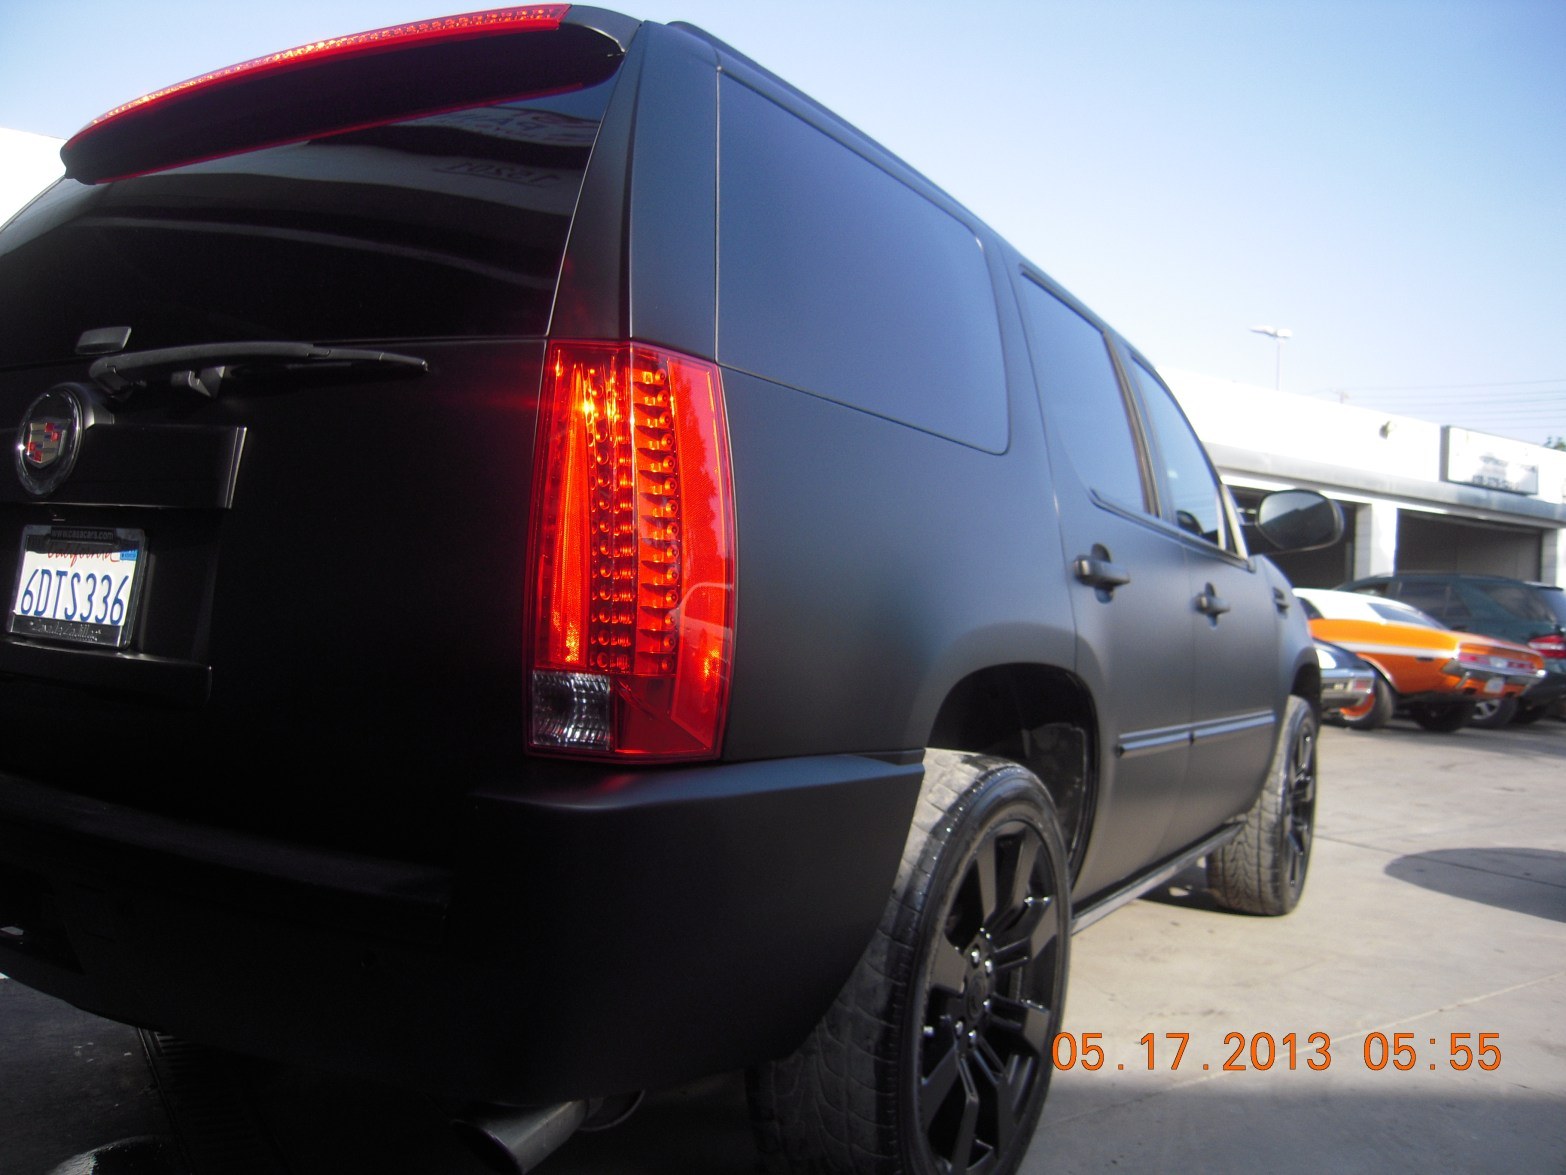 west-coast-body-and-paint-flat-black-2008-escalade-20